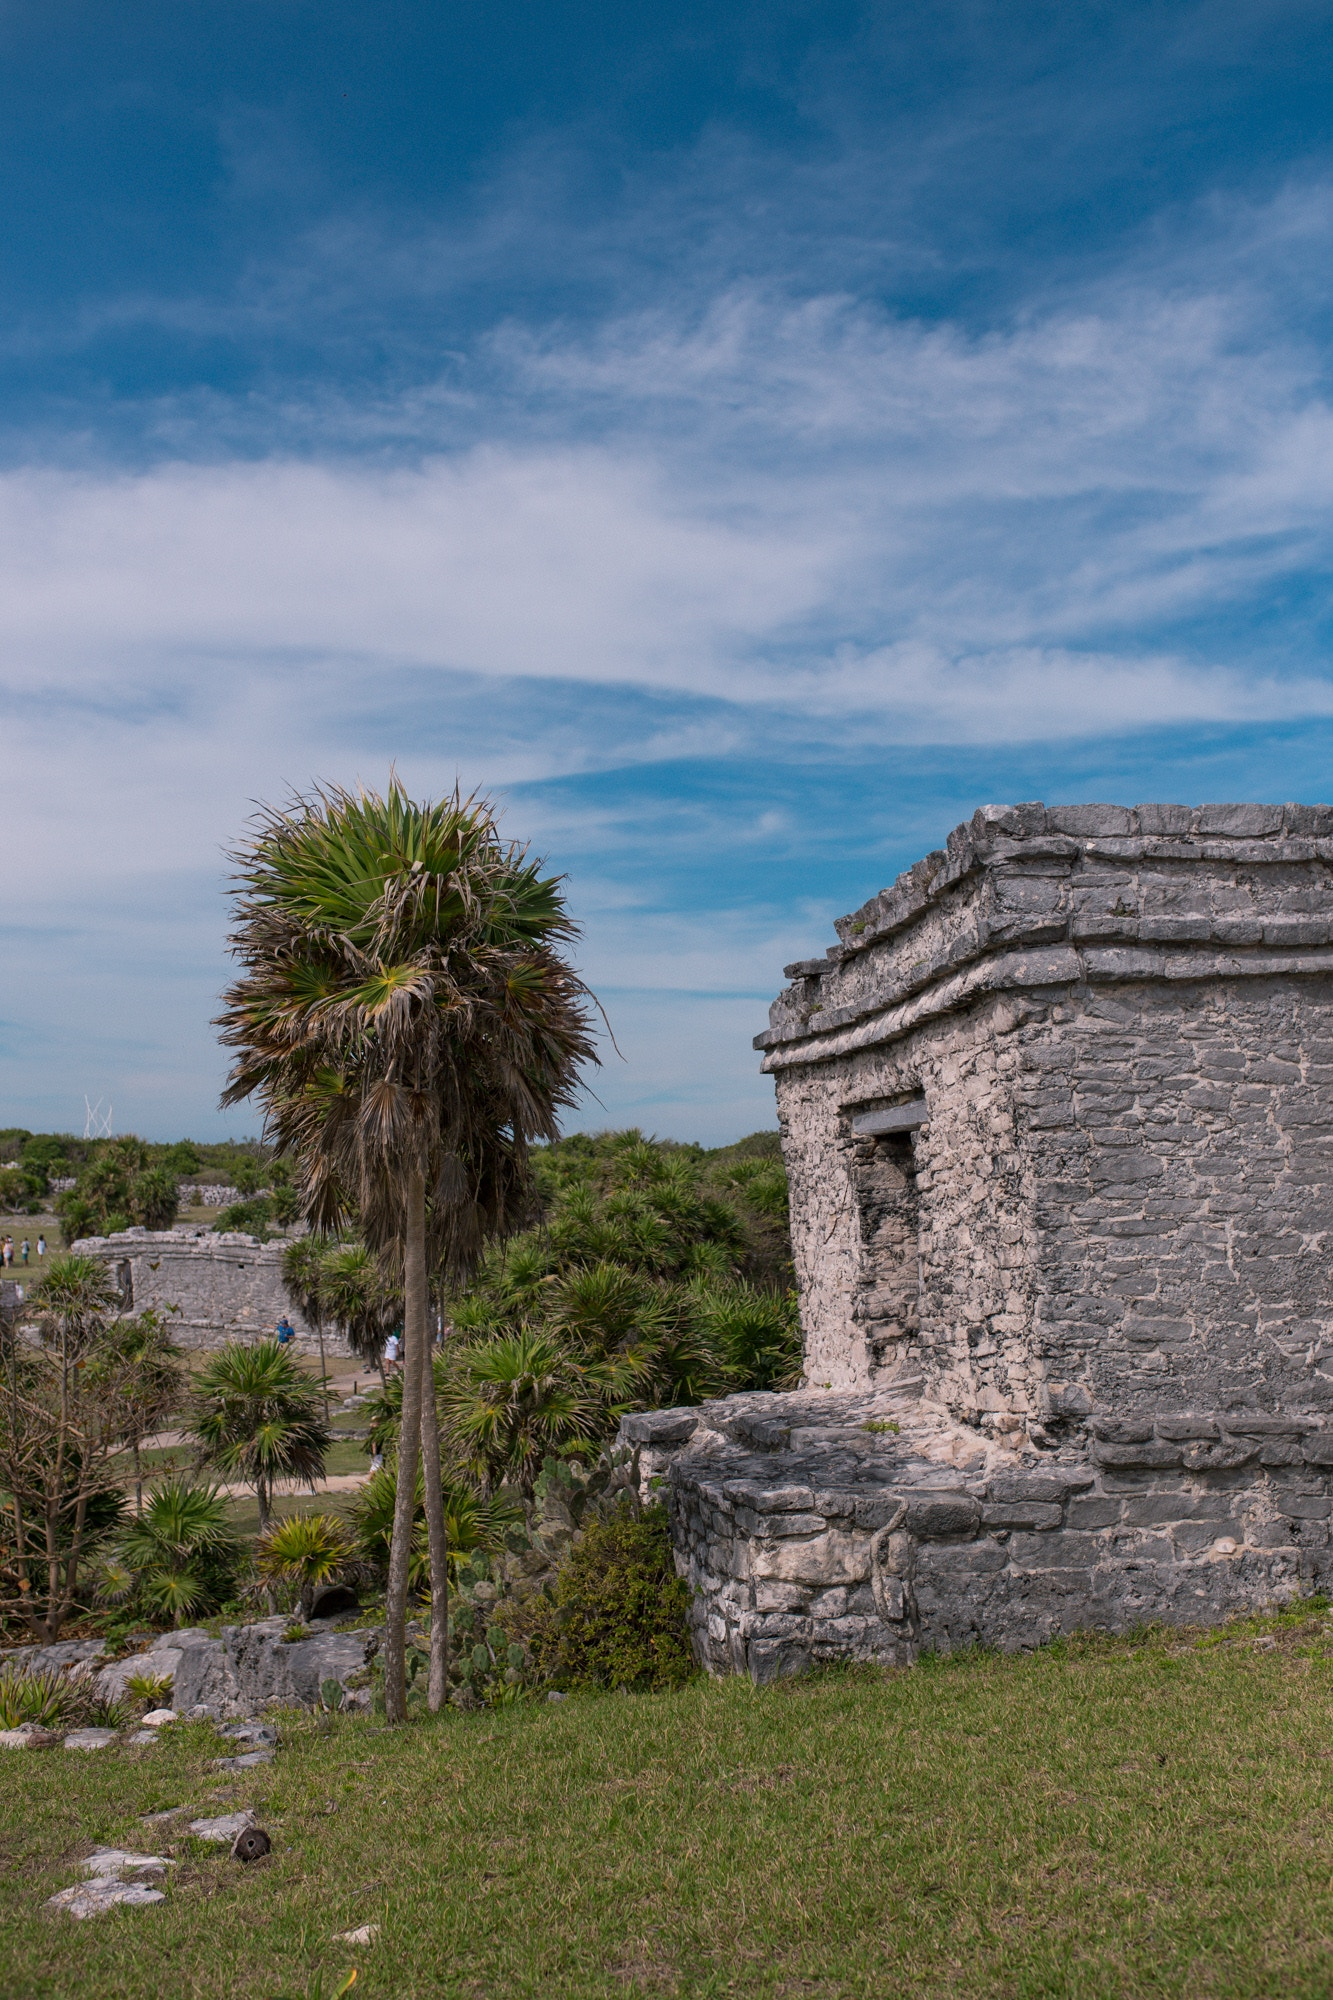 Gorgeous views at the Mayan ruins of Tulum